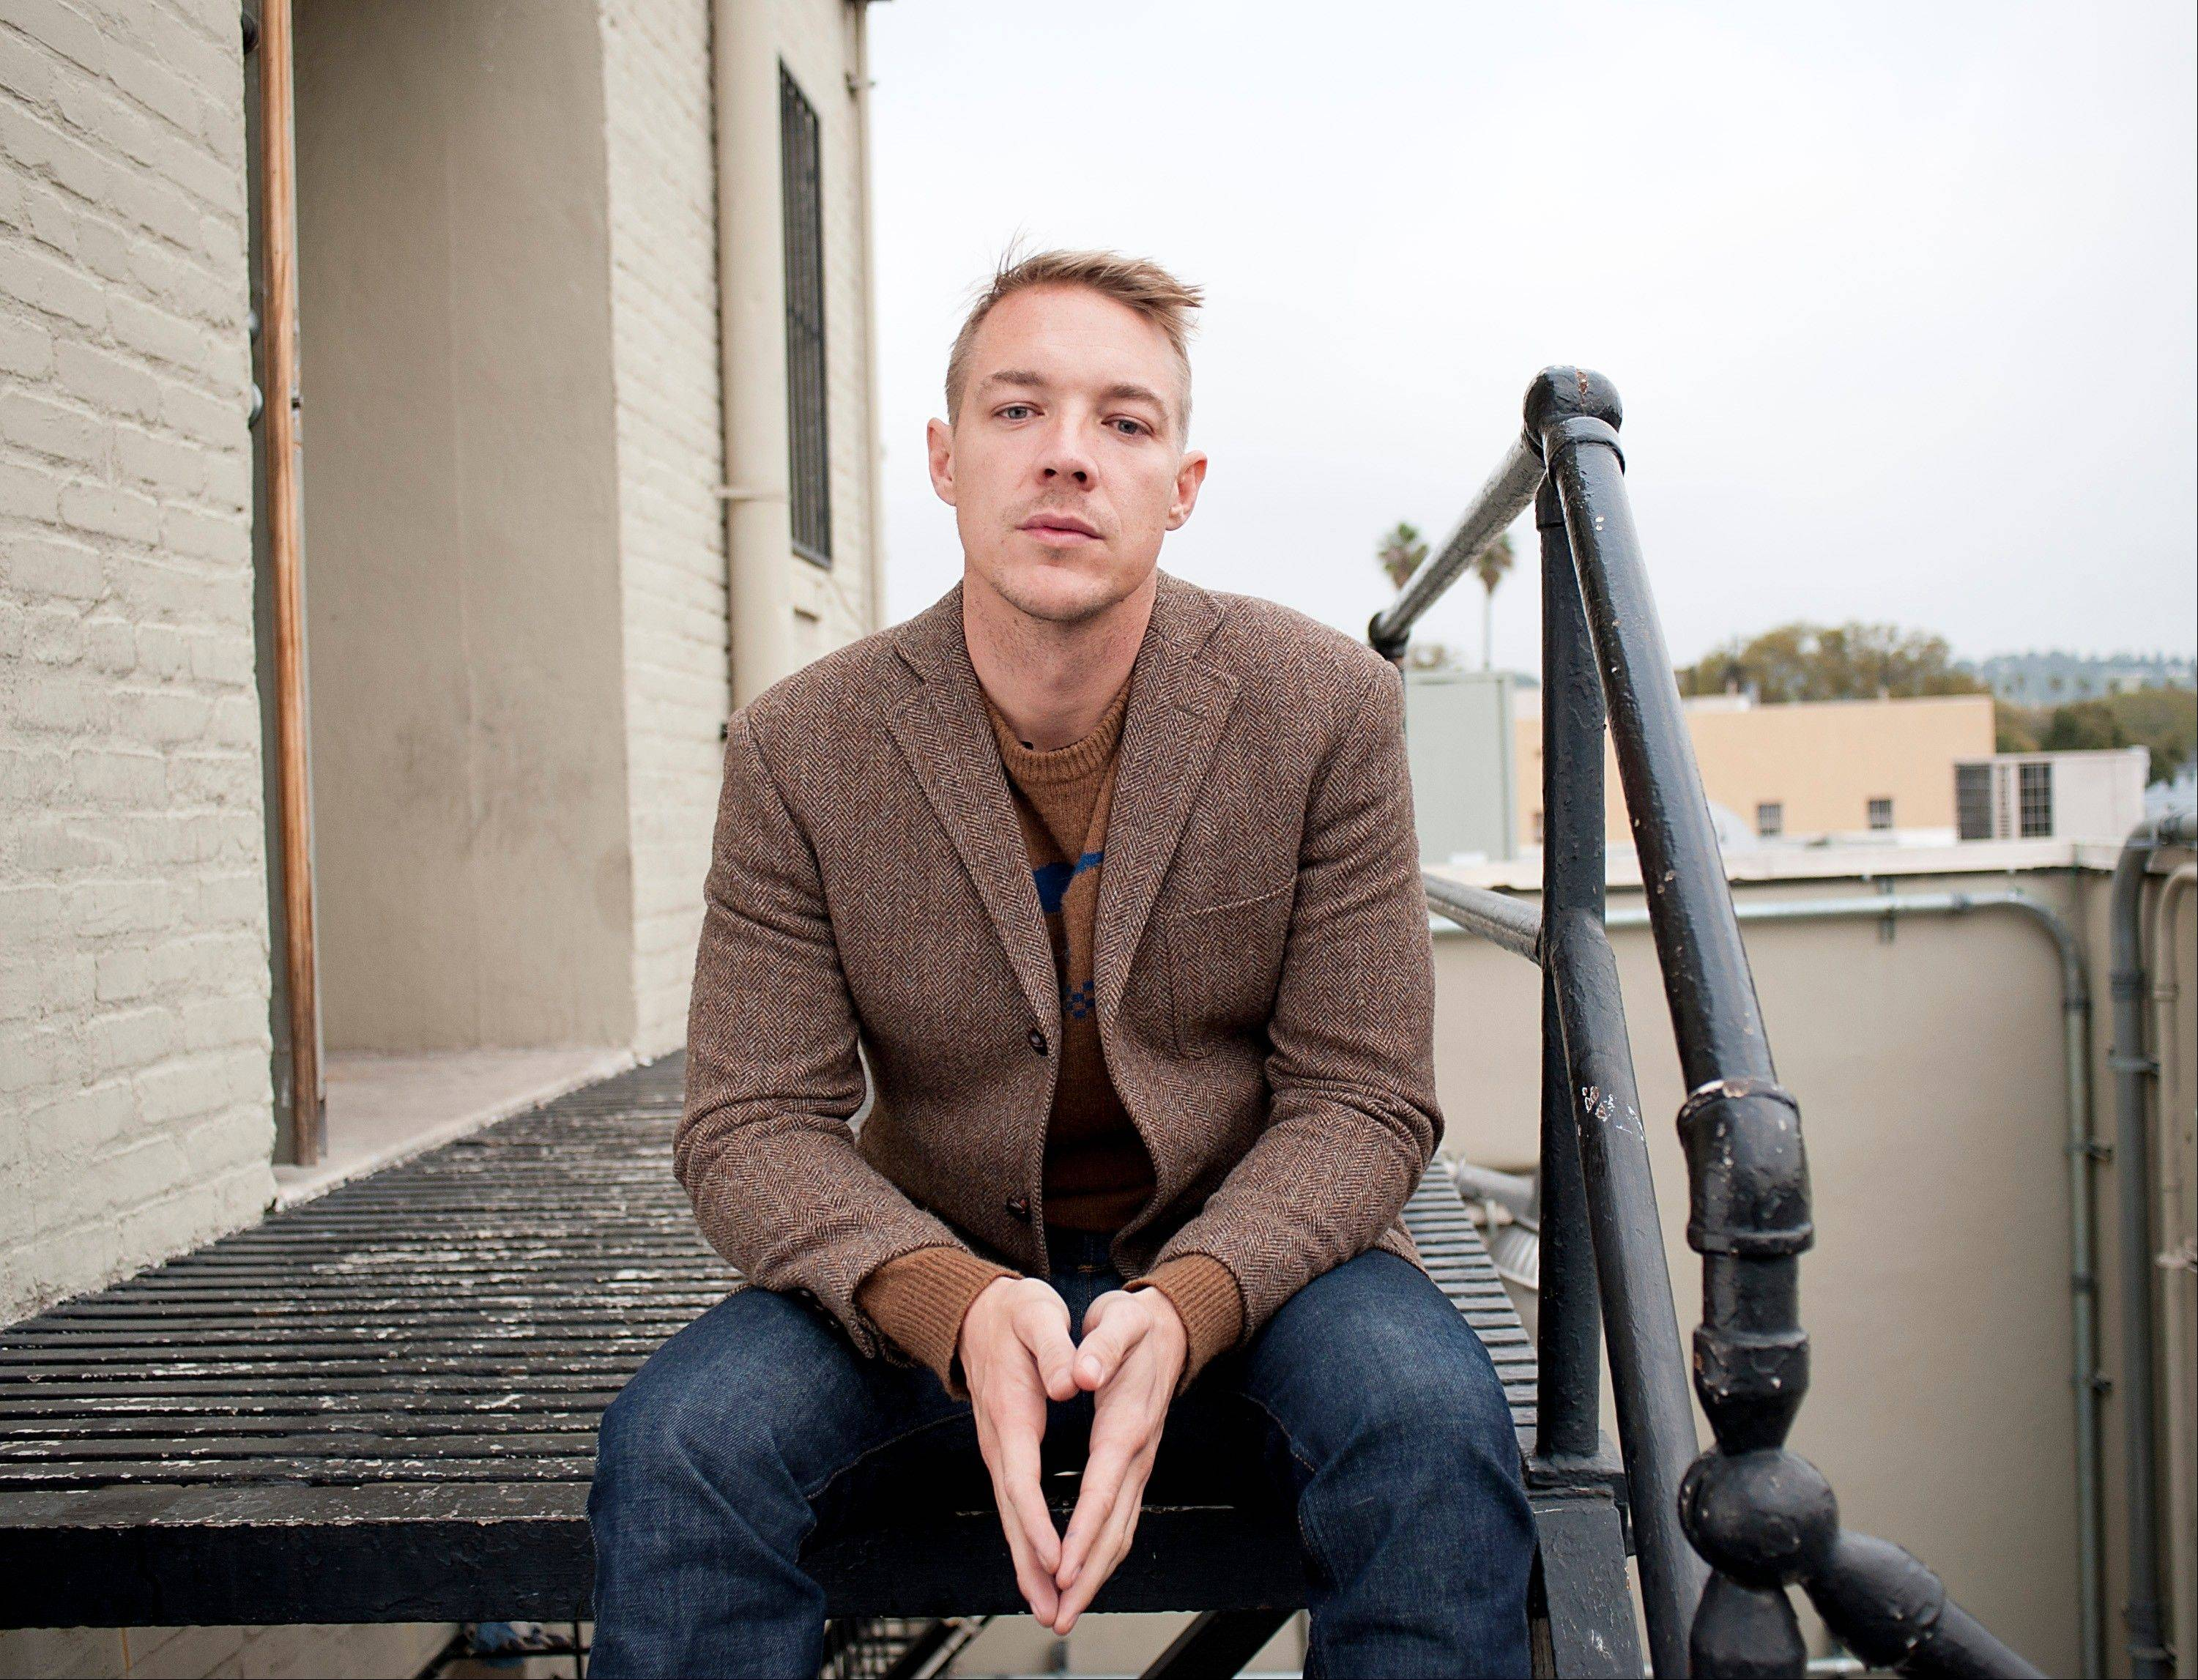 DJ and music producer Diplo is ever evolving as he tinkers with a sound that may help steer the future of electronic dance music.